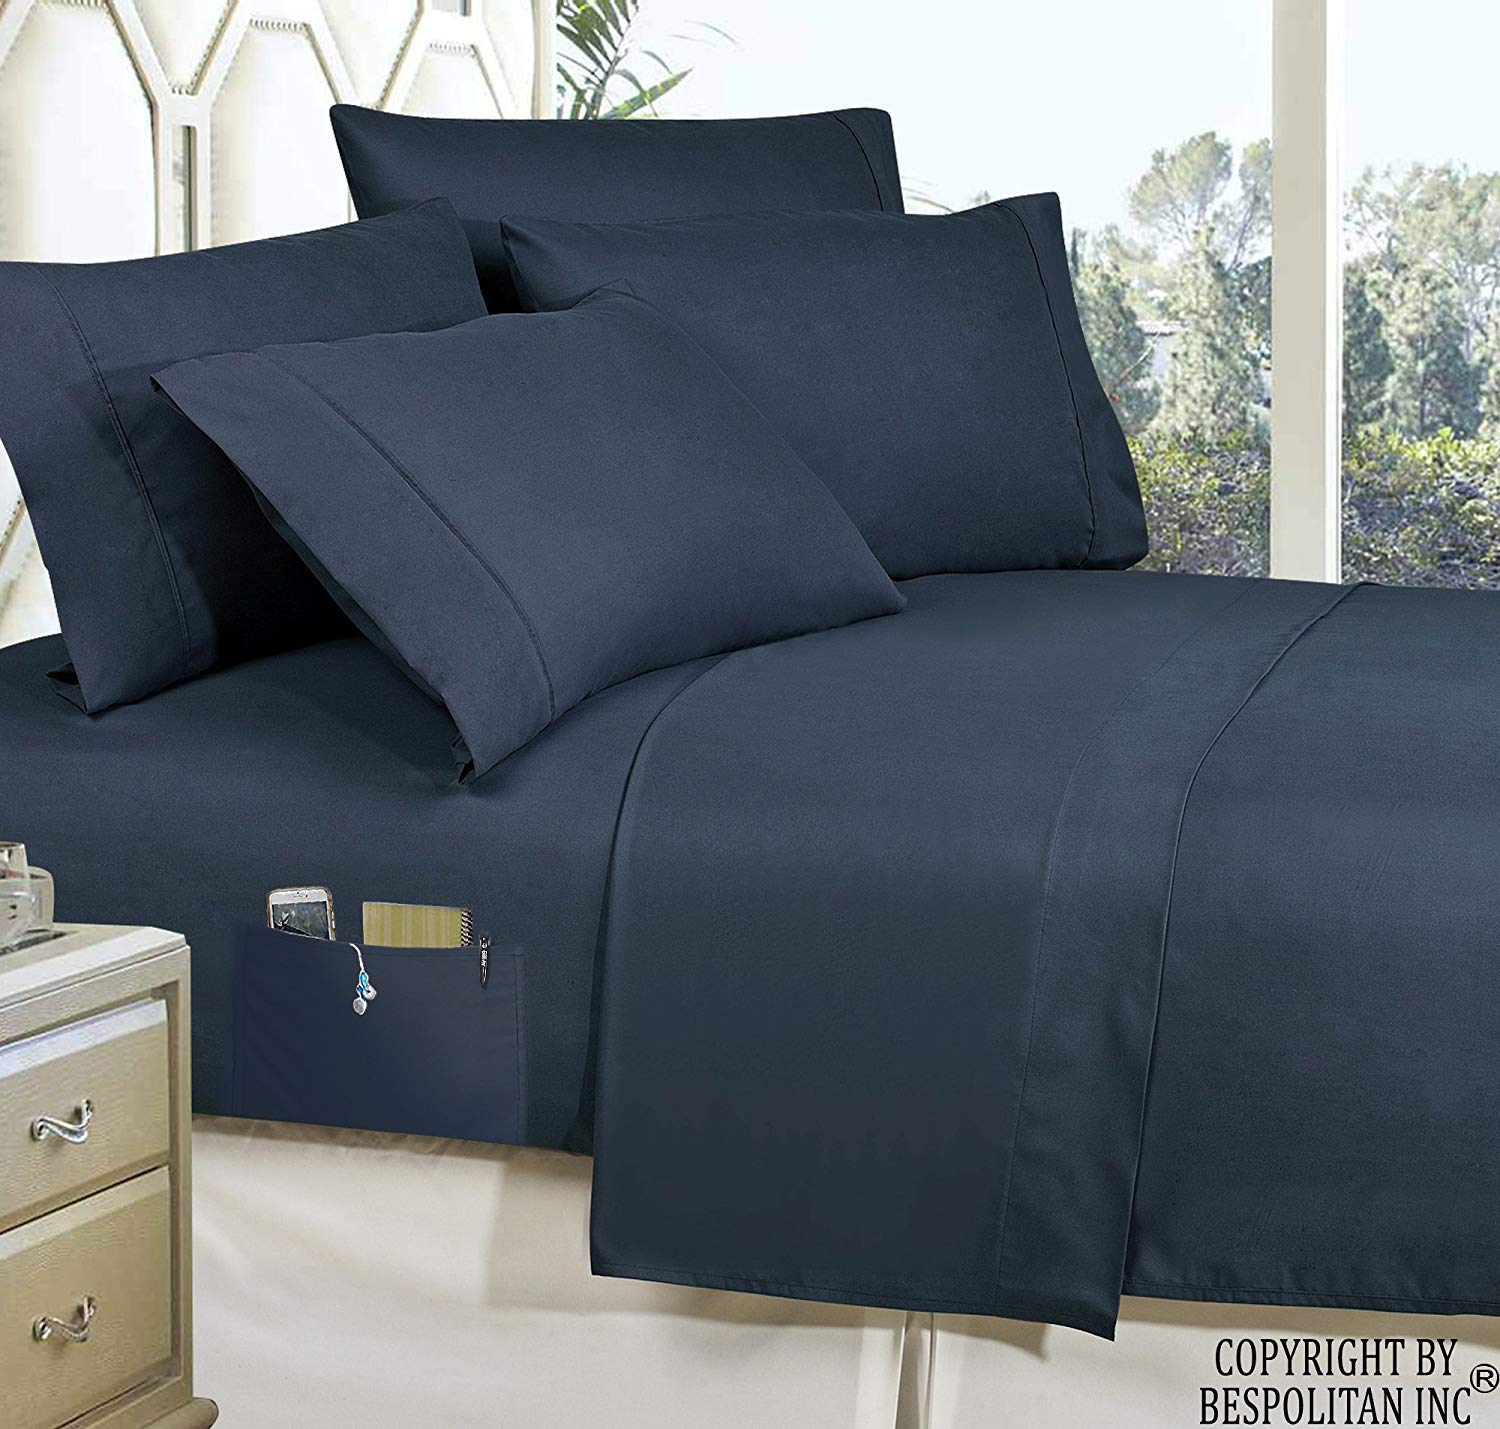 Coziest 6-Piece Bed-in-a-Bag Comforter Set on Elegant Comfort Luxury Best Silky Soft Complete Set Includes Bed Sheet Set with Double Sided Storage Pockets Softest Black Twin//Twin XL